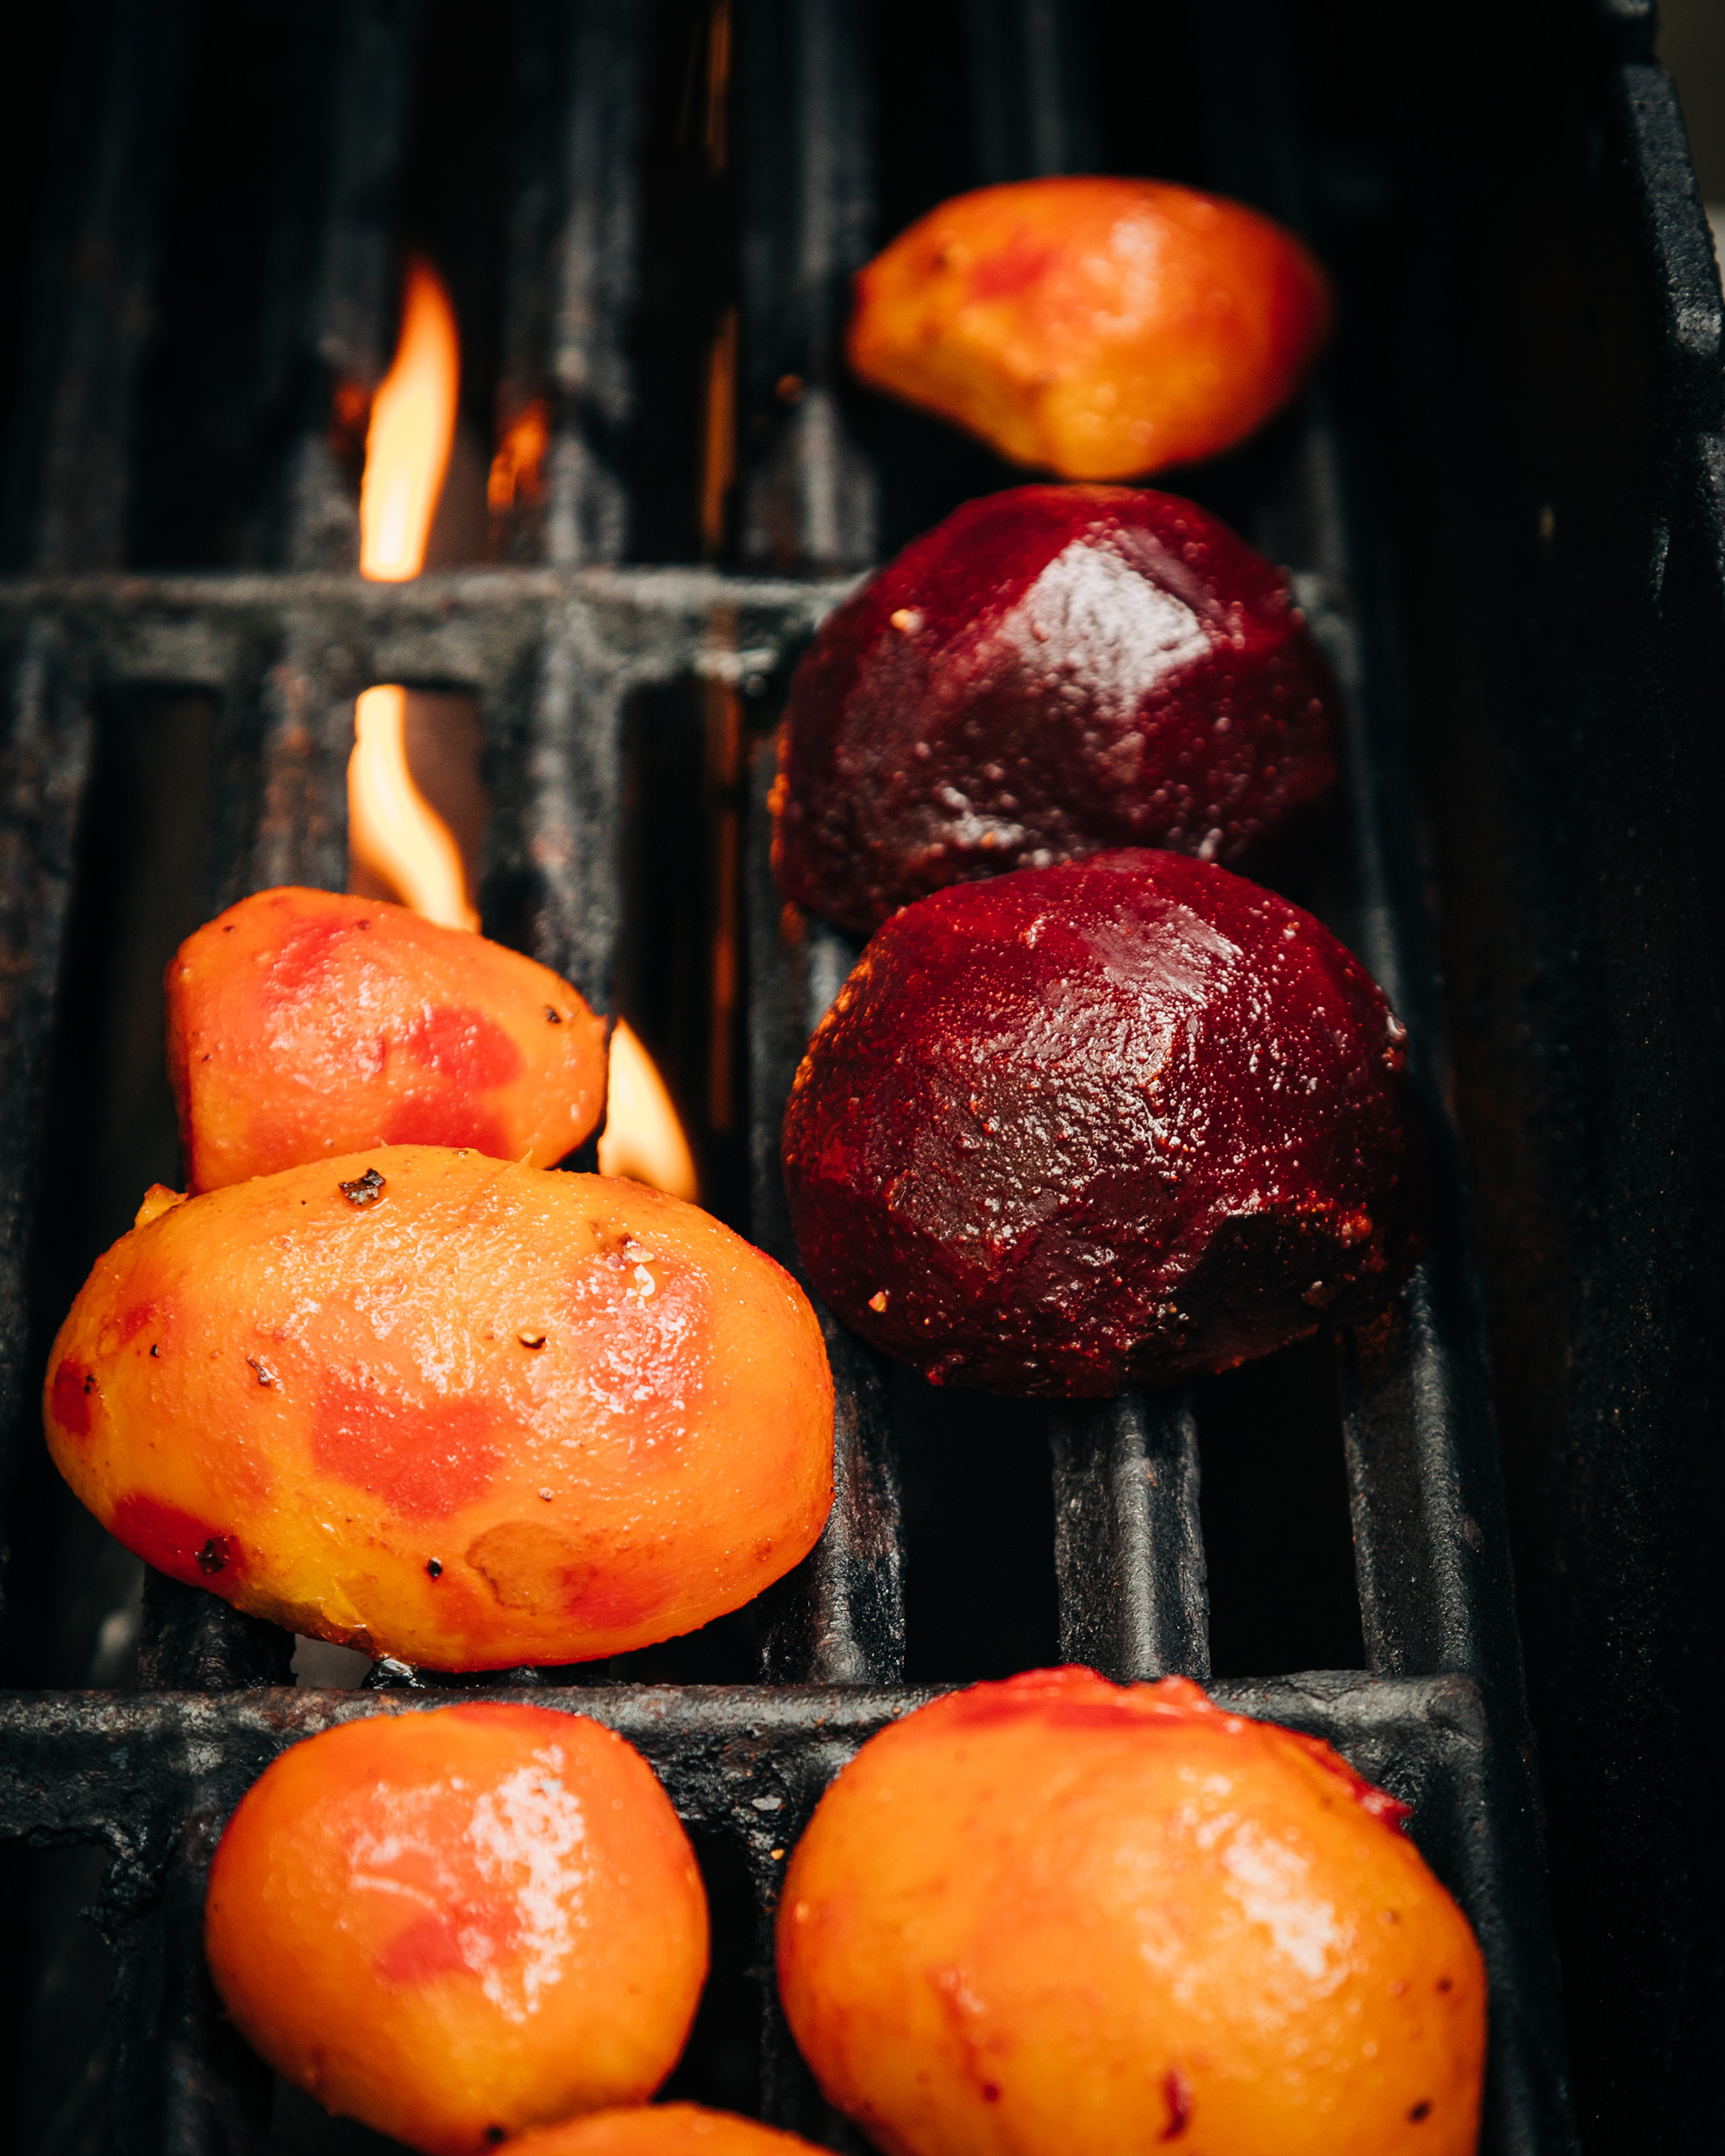 Image shows beet halves on a grill. A flame is kicking up in the background.